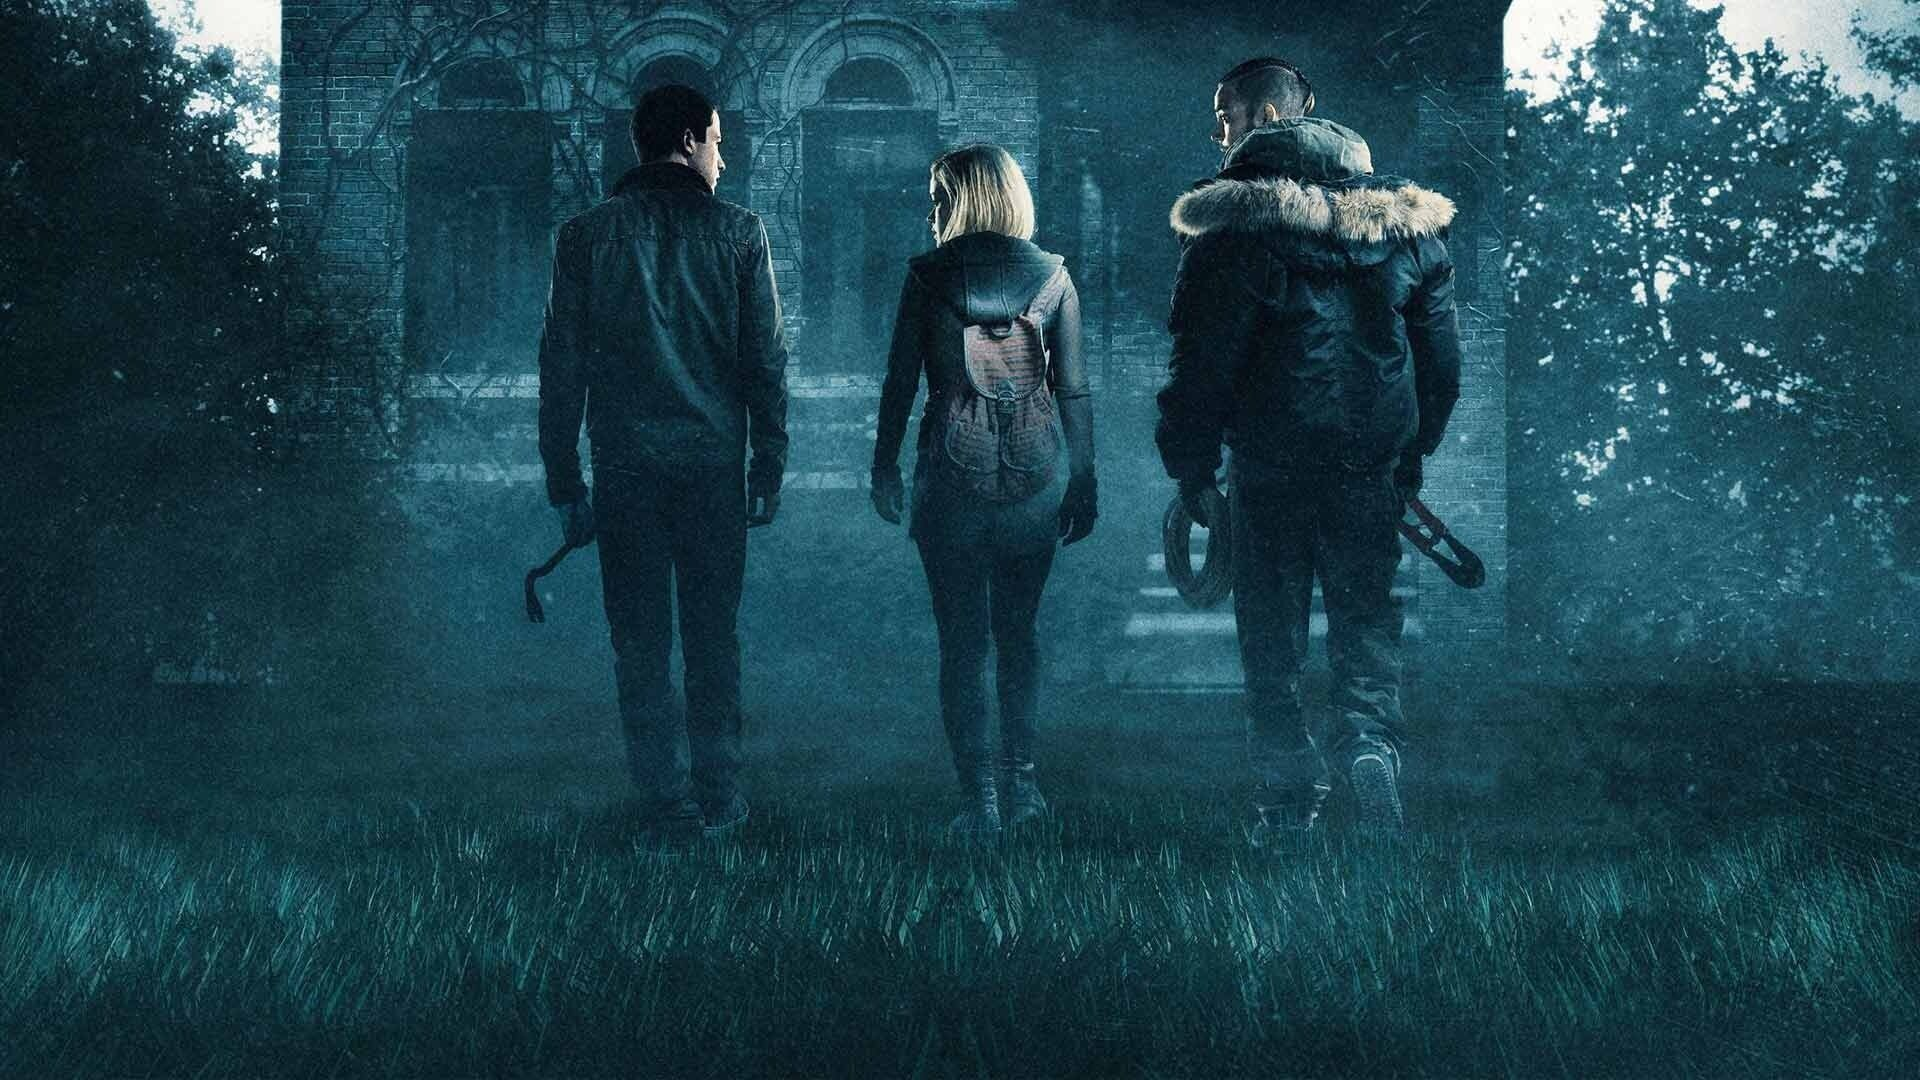 #77) Don't Breathe - (2016 - dir. Fede Álvarez)